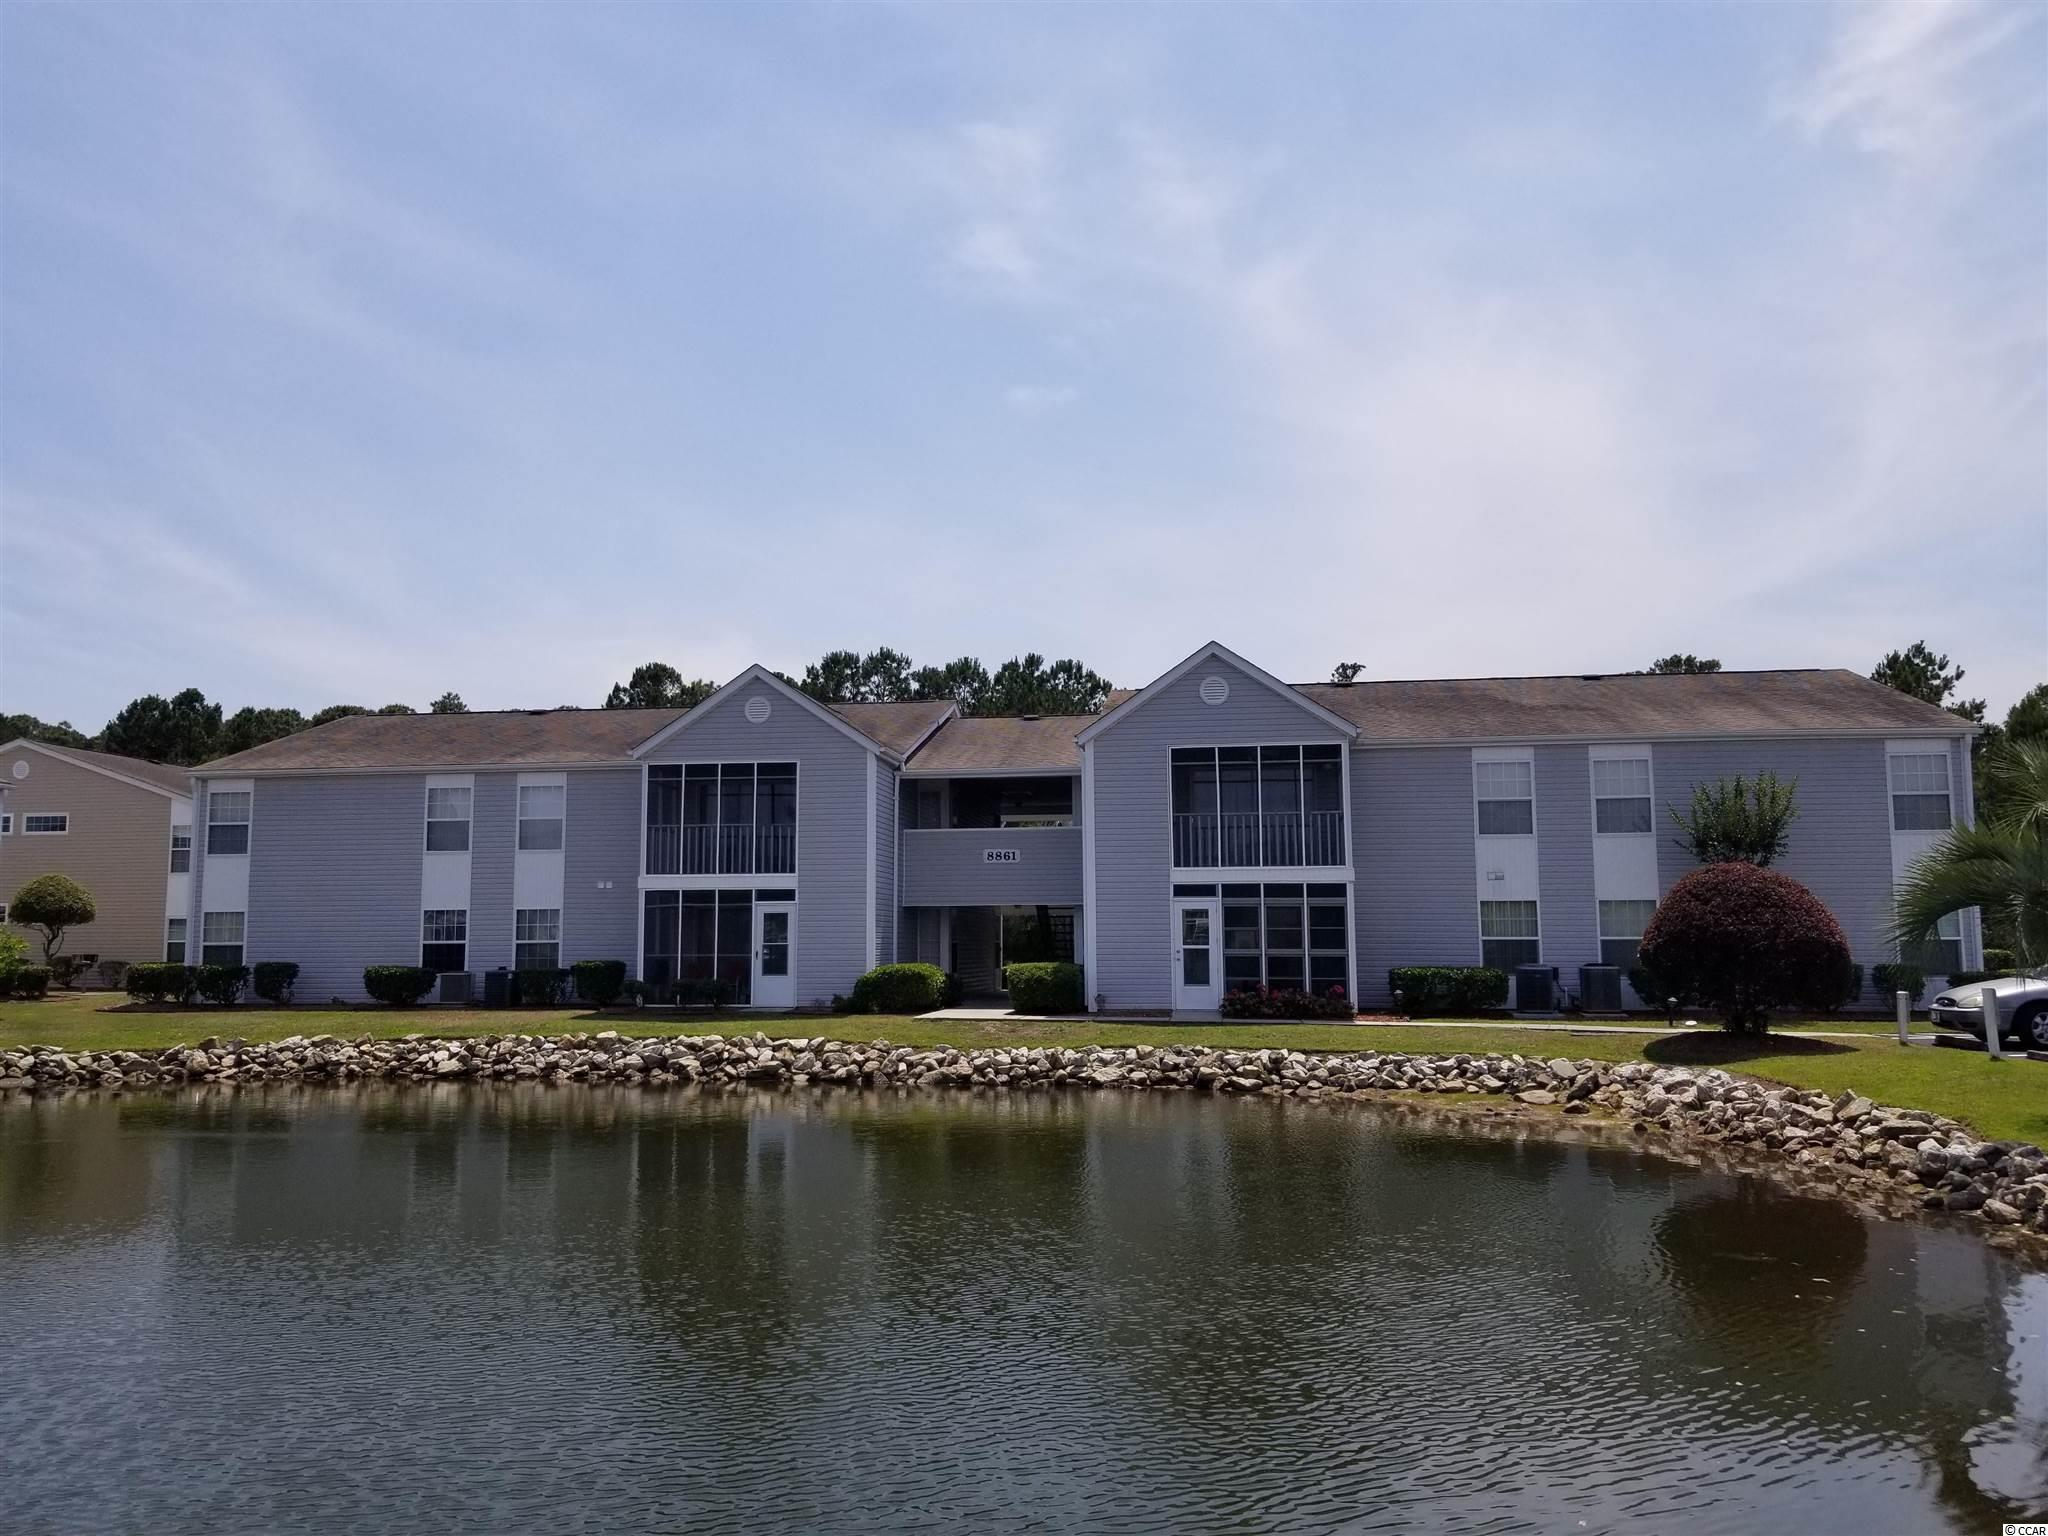 Located conveniently off Highway 17 Bypass in Surfside, straight shot down Glenns Bay Rd to the town limits of Surfside Beach and the ocean. This is a ground floor corner unit with 3 BR, 2 BA, laundry room, screen porch and storage room. Really good floor plan for primary residence or 2nd home. South Bay Lakes has community pool.